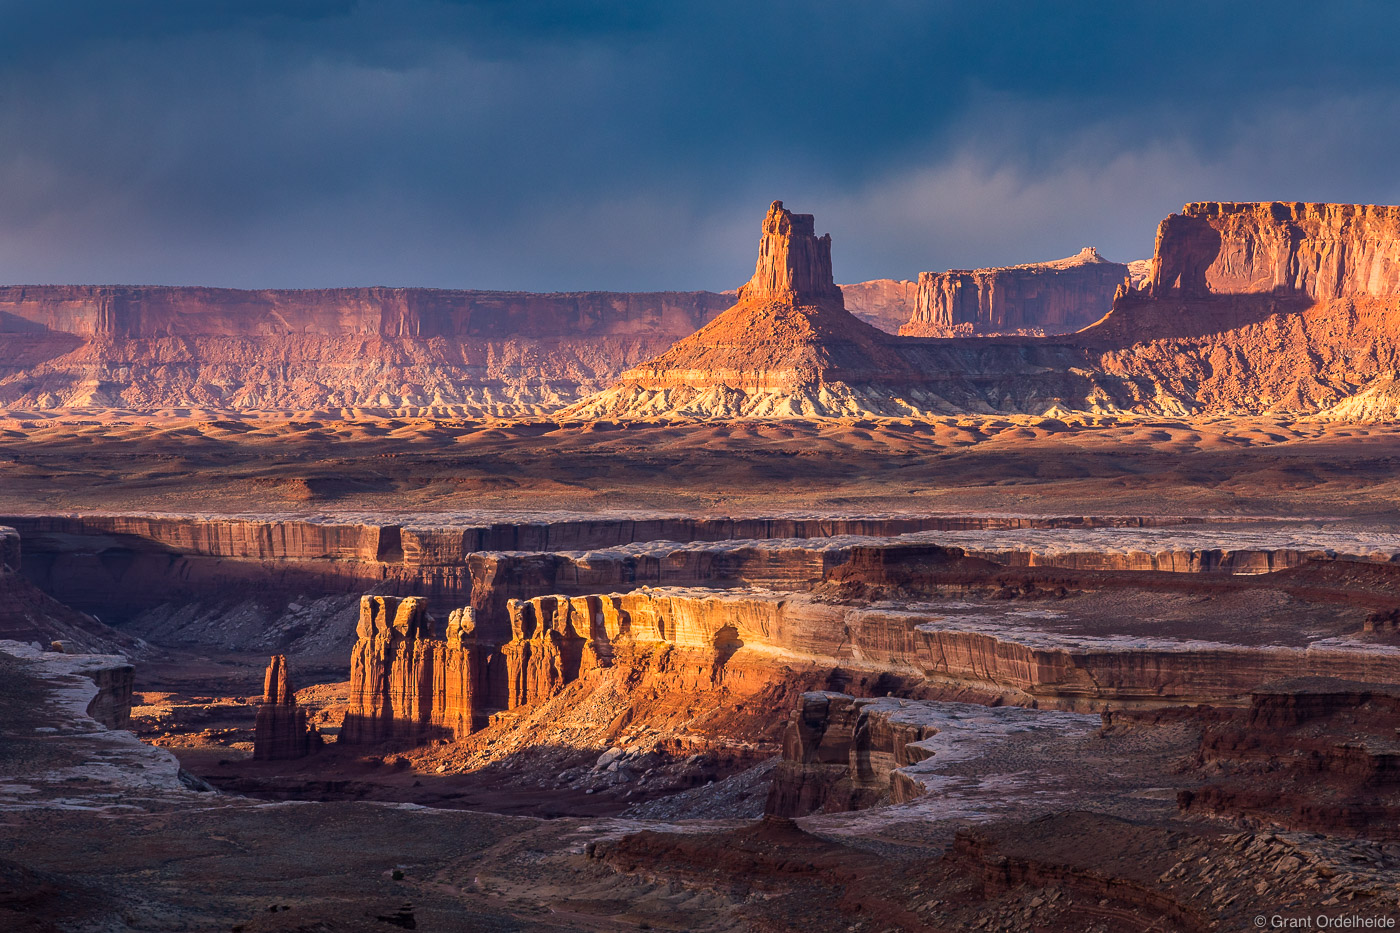 Soda Springs Basin and Candlestick Tower seen from the White Rim Trail in Canyonlands National Park.